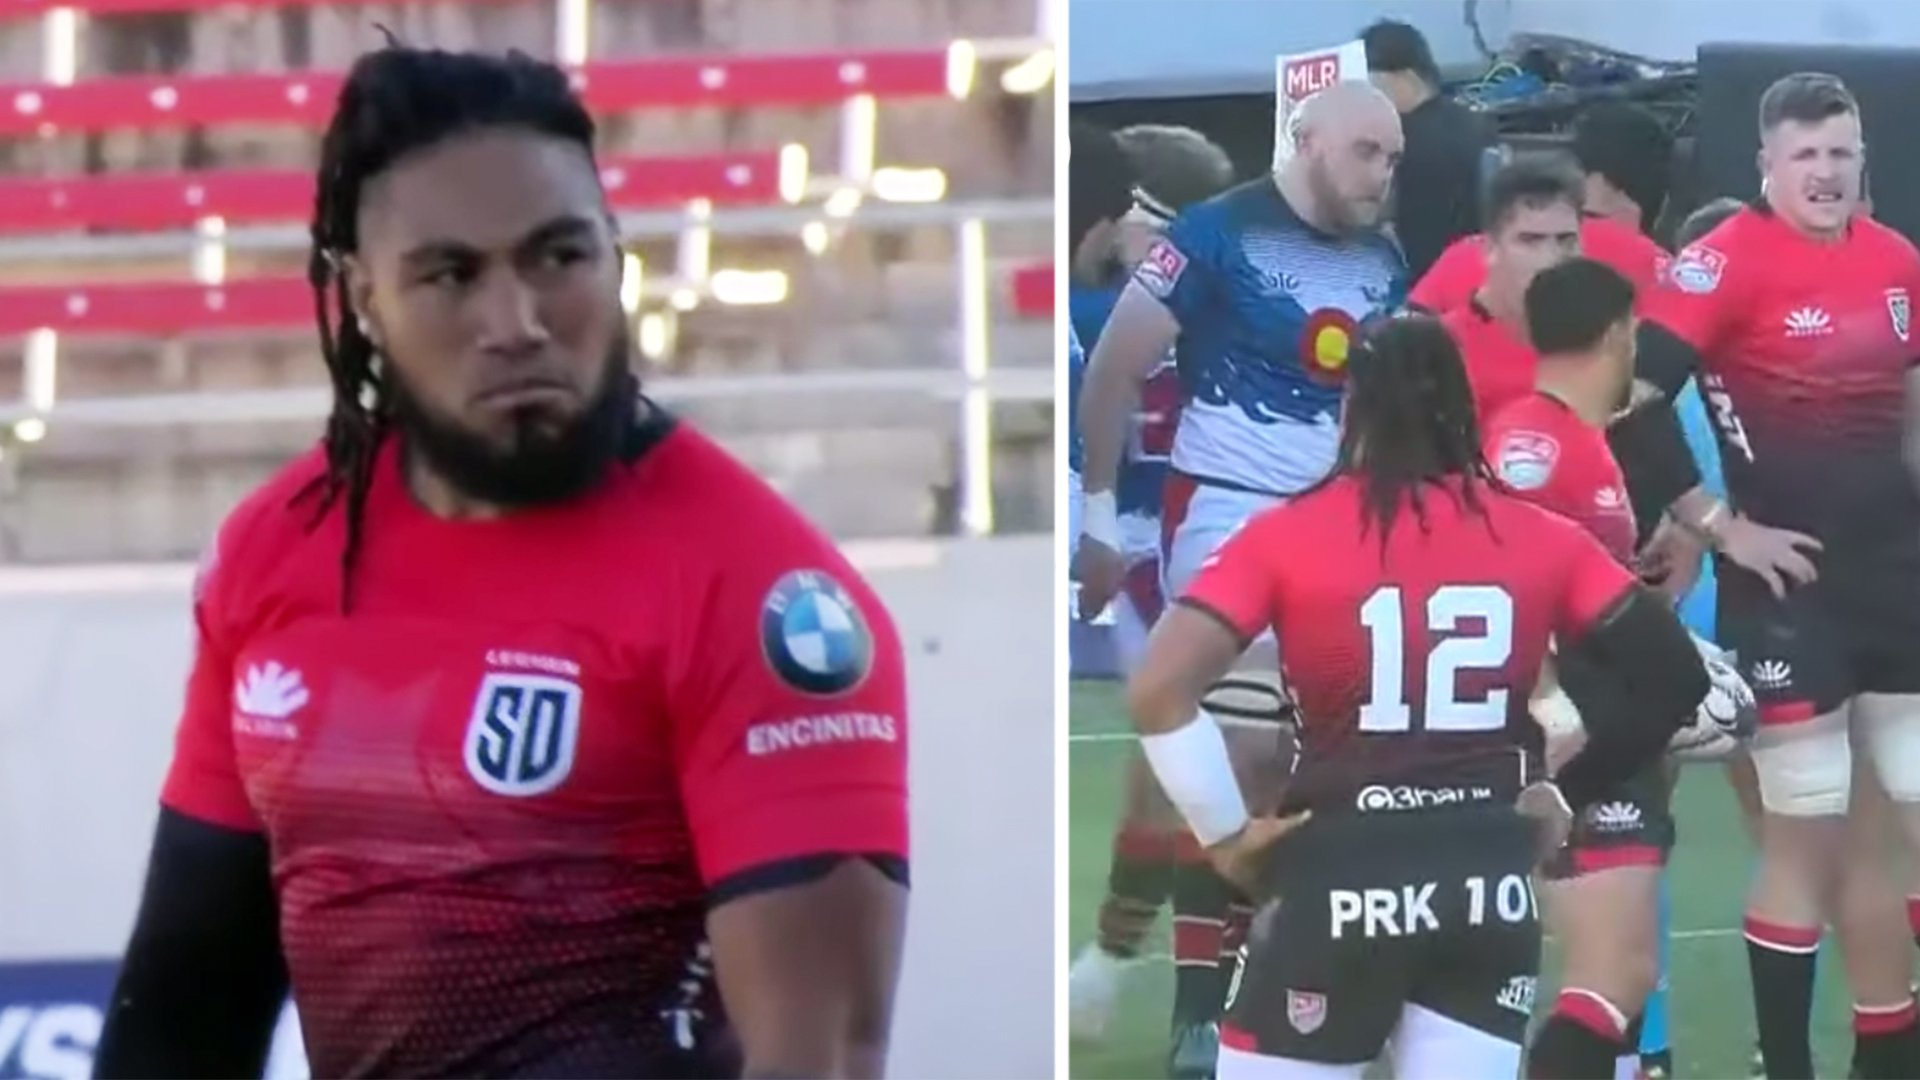 Ma'a Nonu makes his first big mistake in American rugby - Rugby OnSlaught